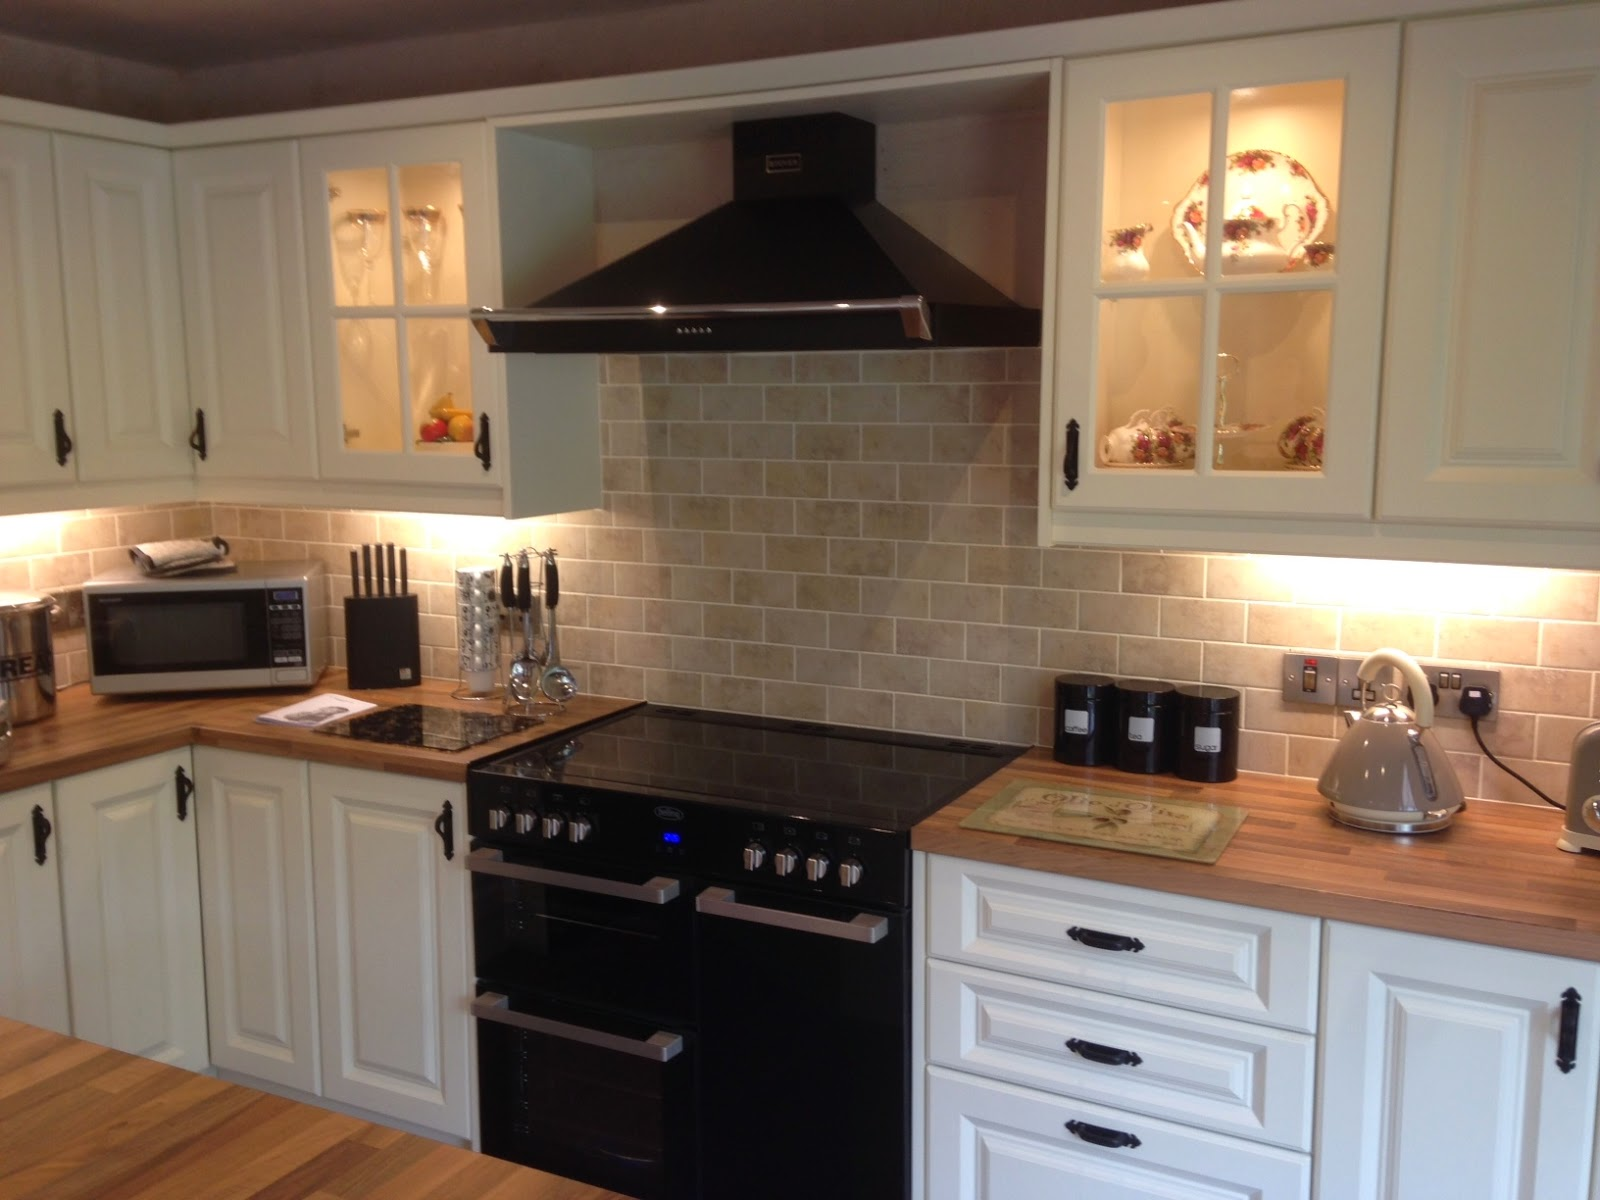 Kitchens direct ni july 2014 for Kitchens direct